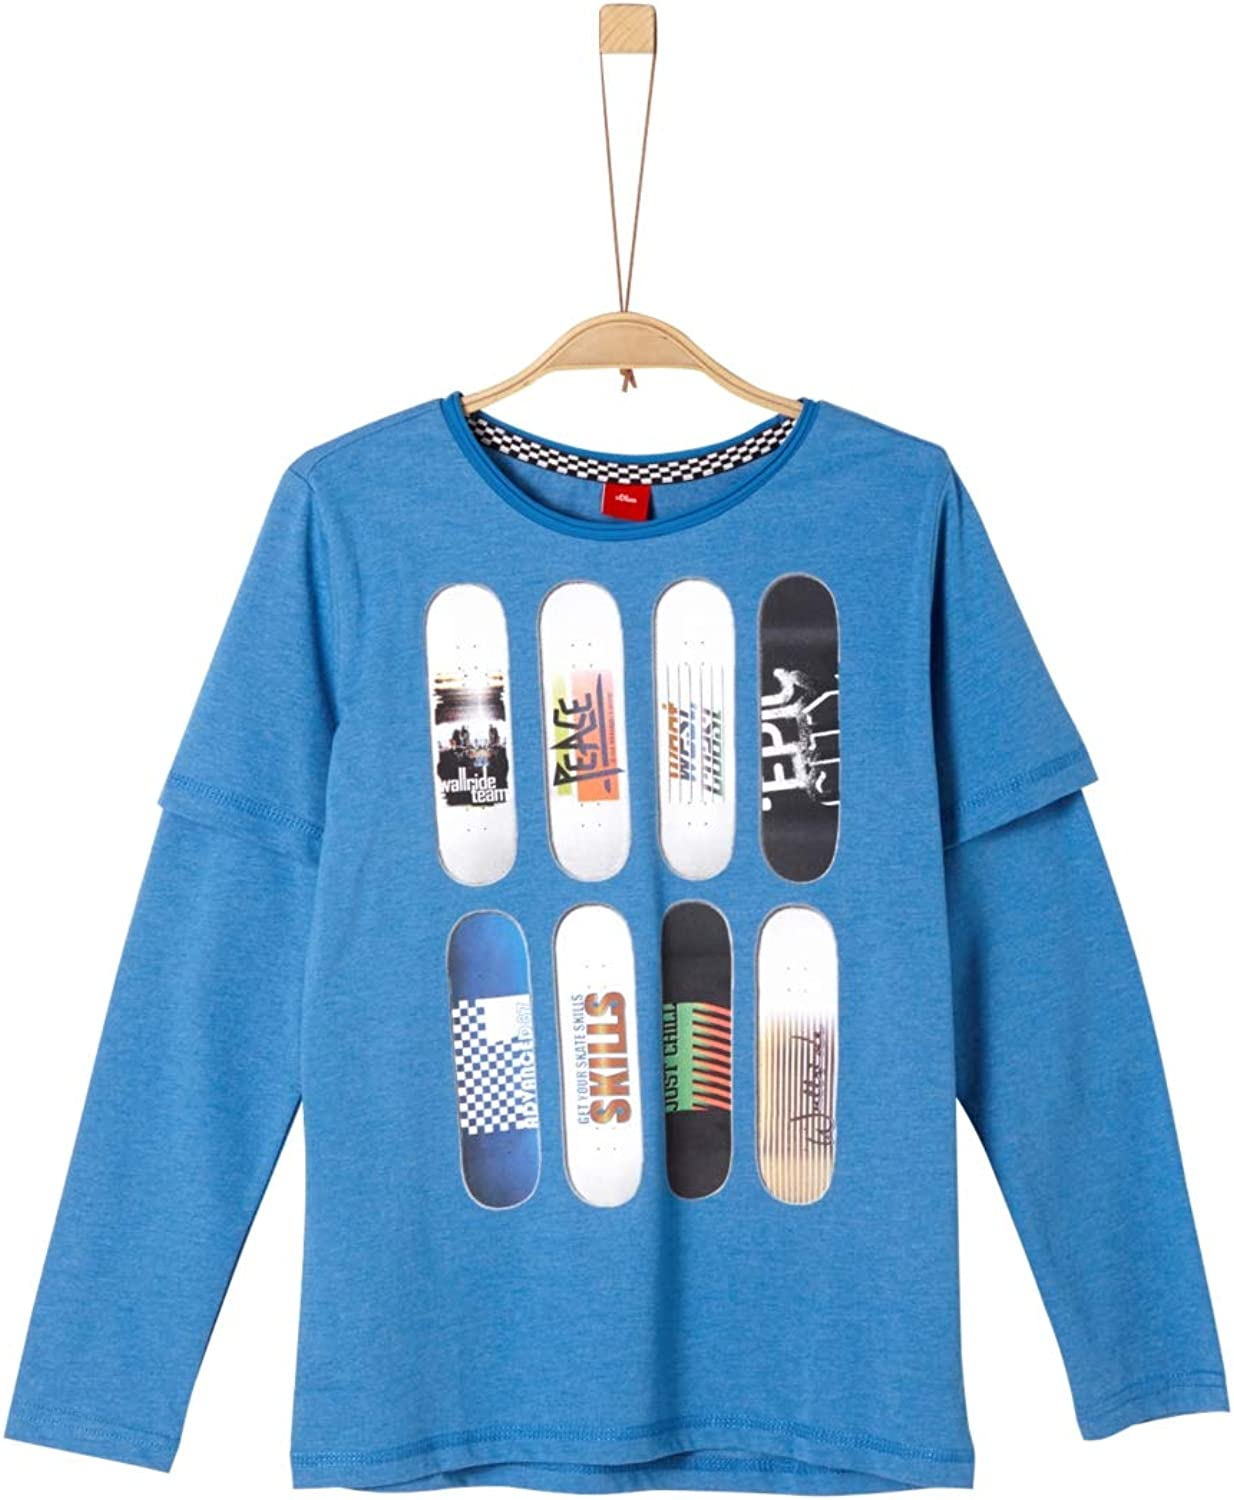 s.Oliver Boys Long Sleeve Top